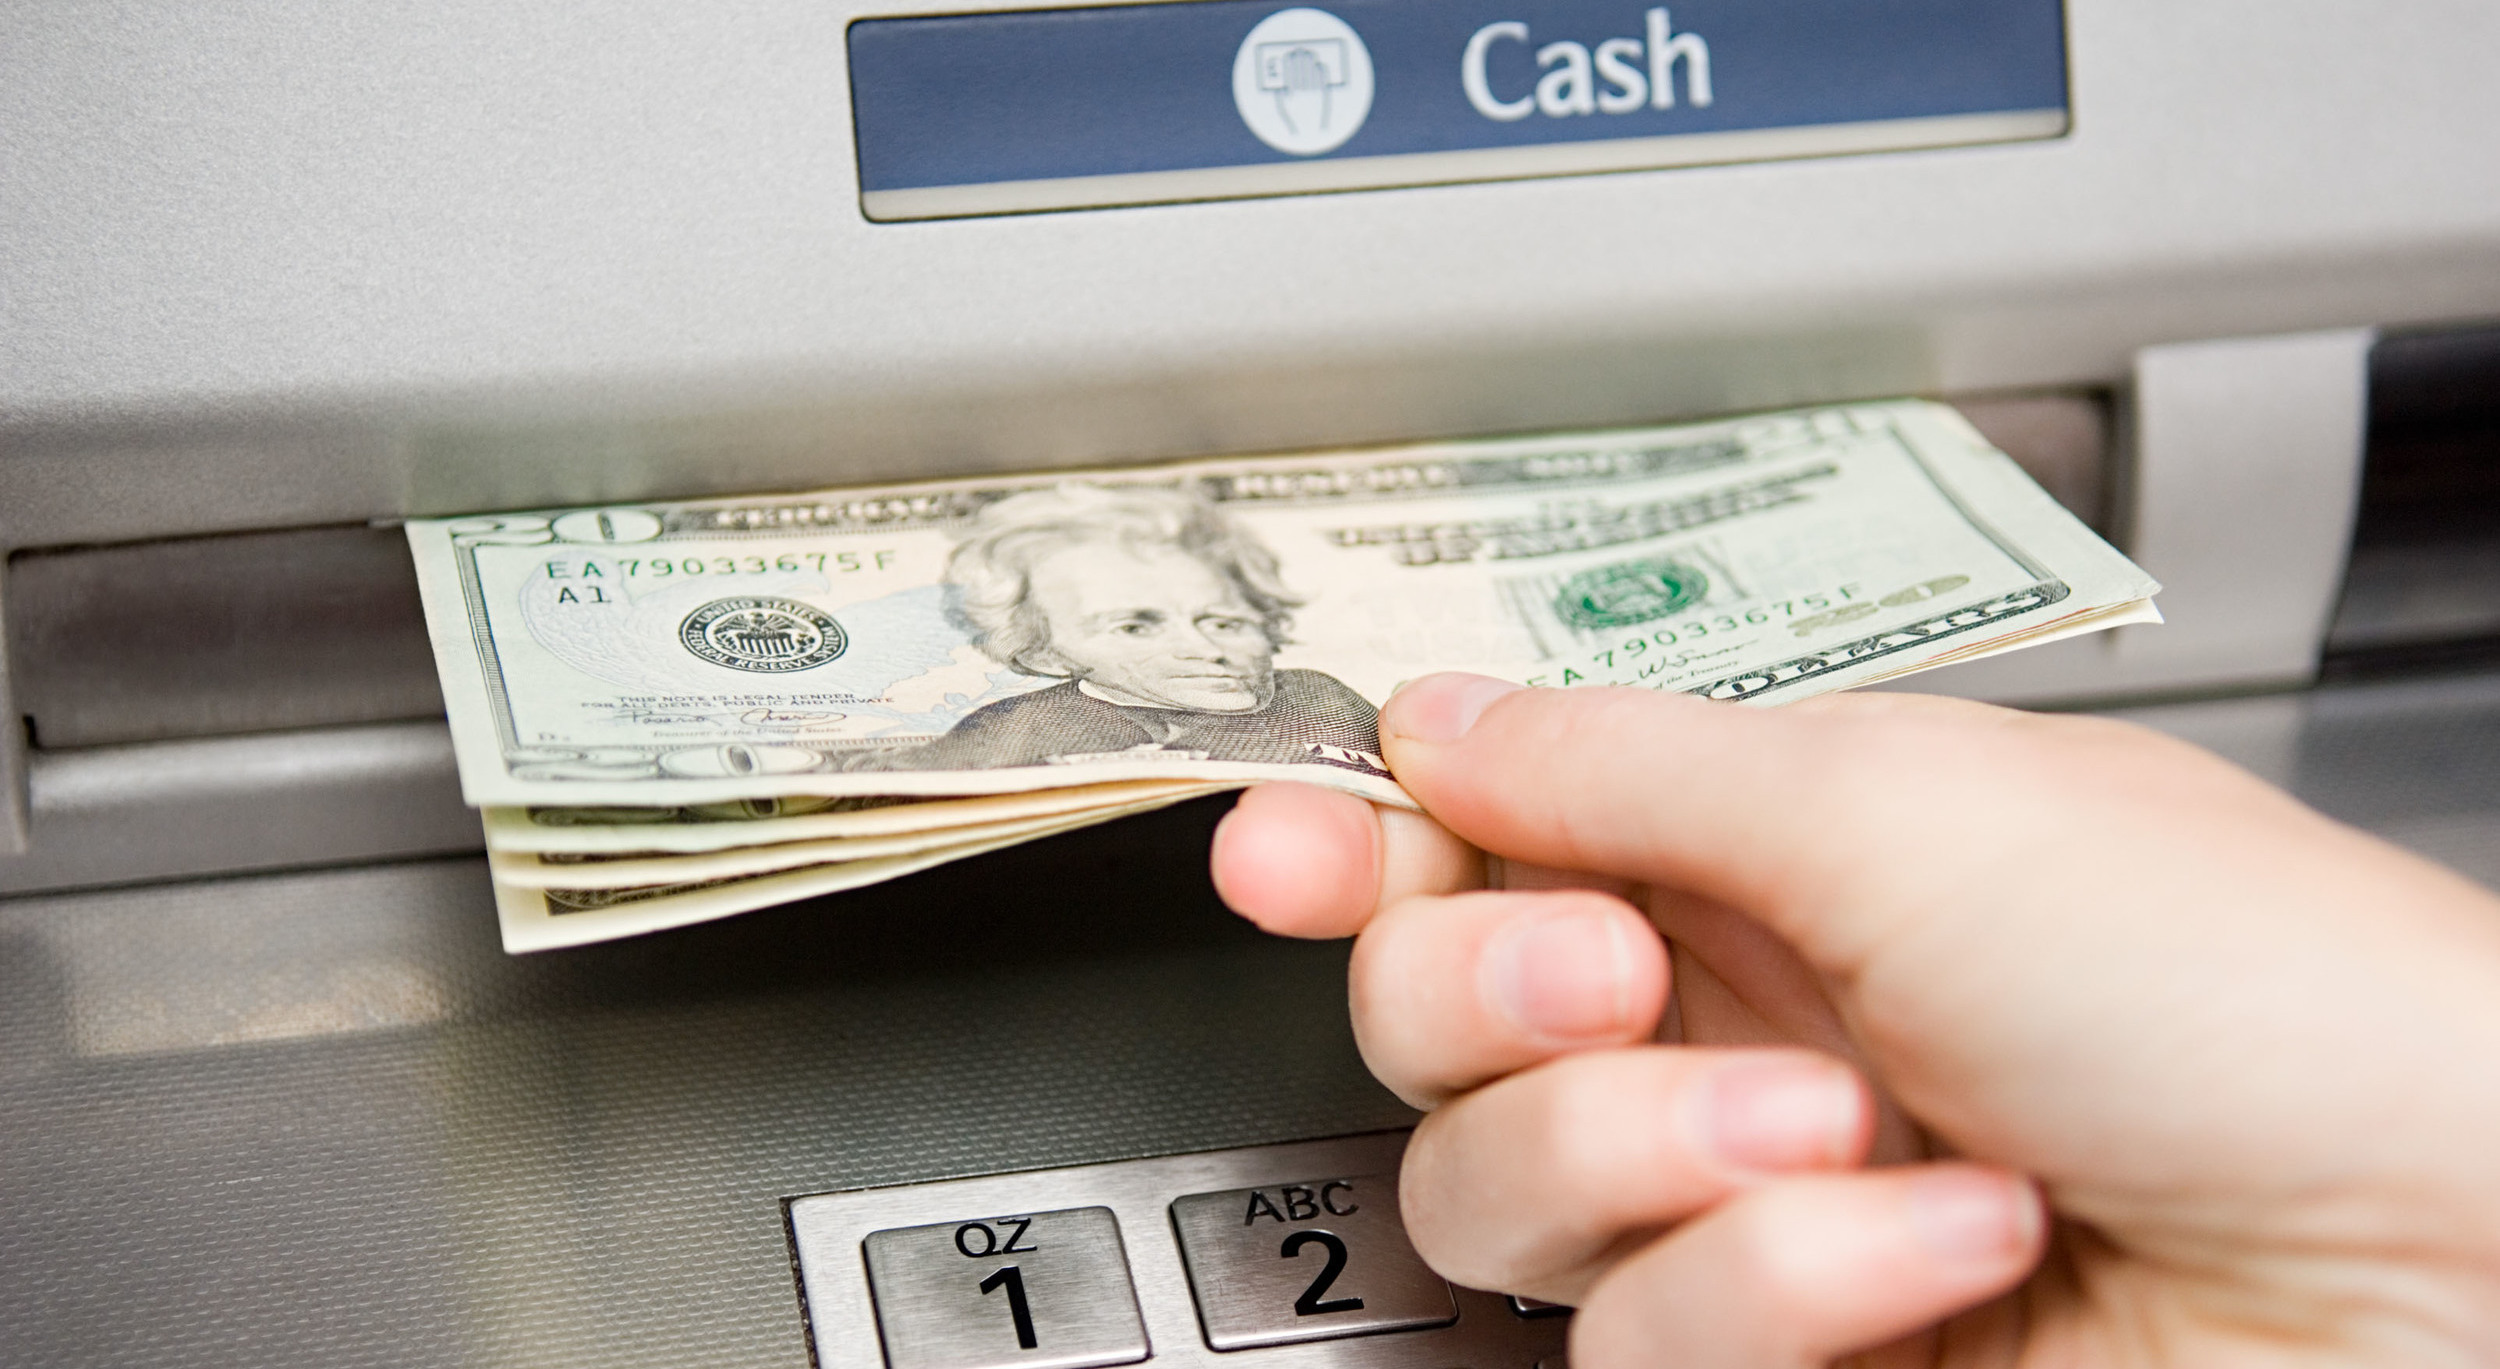 ap9ctt-person-withdrawing-cash-atm-machine-money-dollar-bills-bank-banking-fees-financial-institution-2